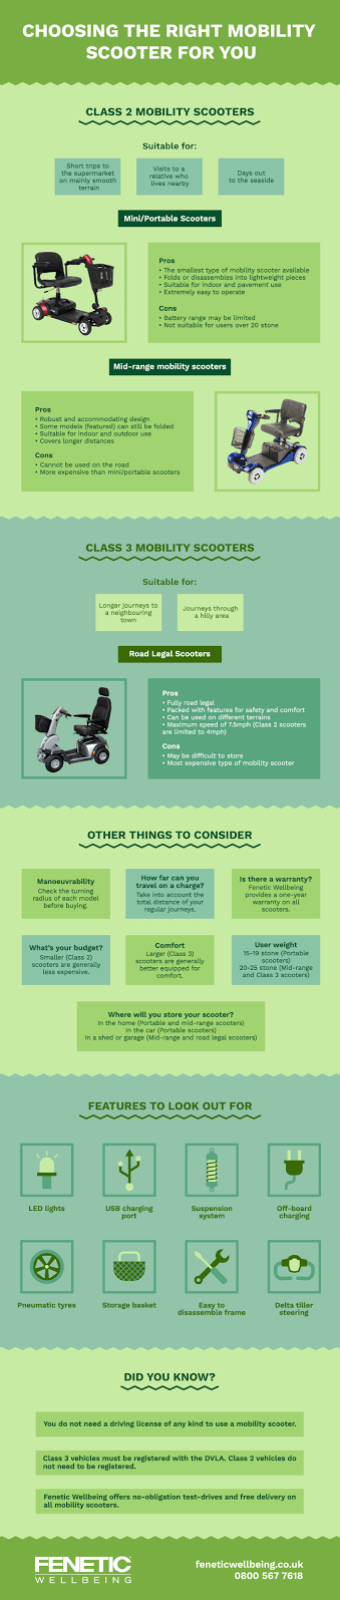 An infographic sharing the different types of mobility scooter available